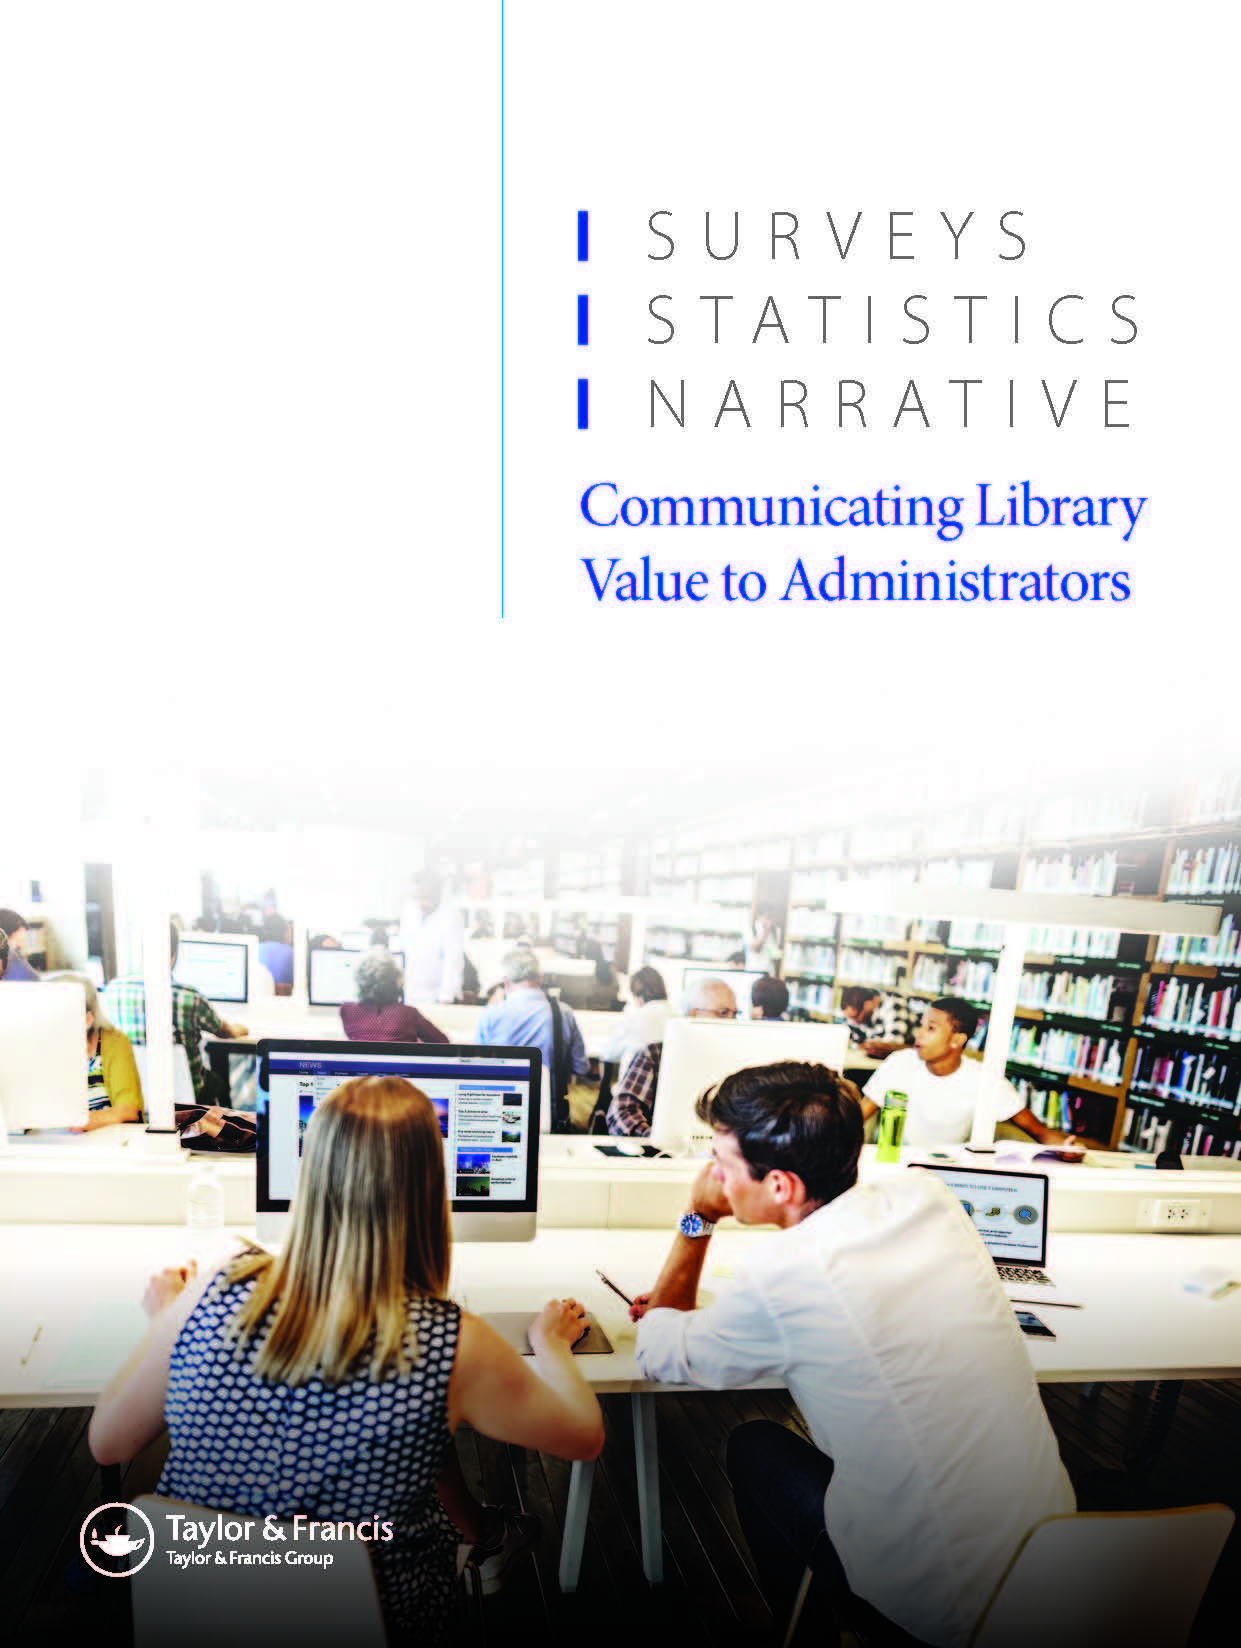 Surveys, Statistics, Narrative: Communicating Library Value to Administrators